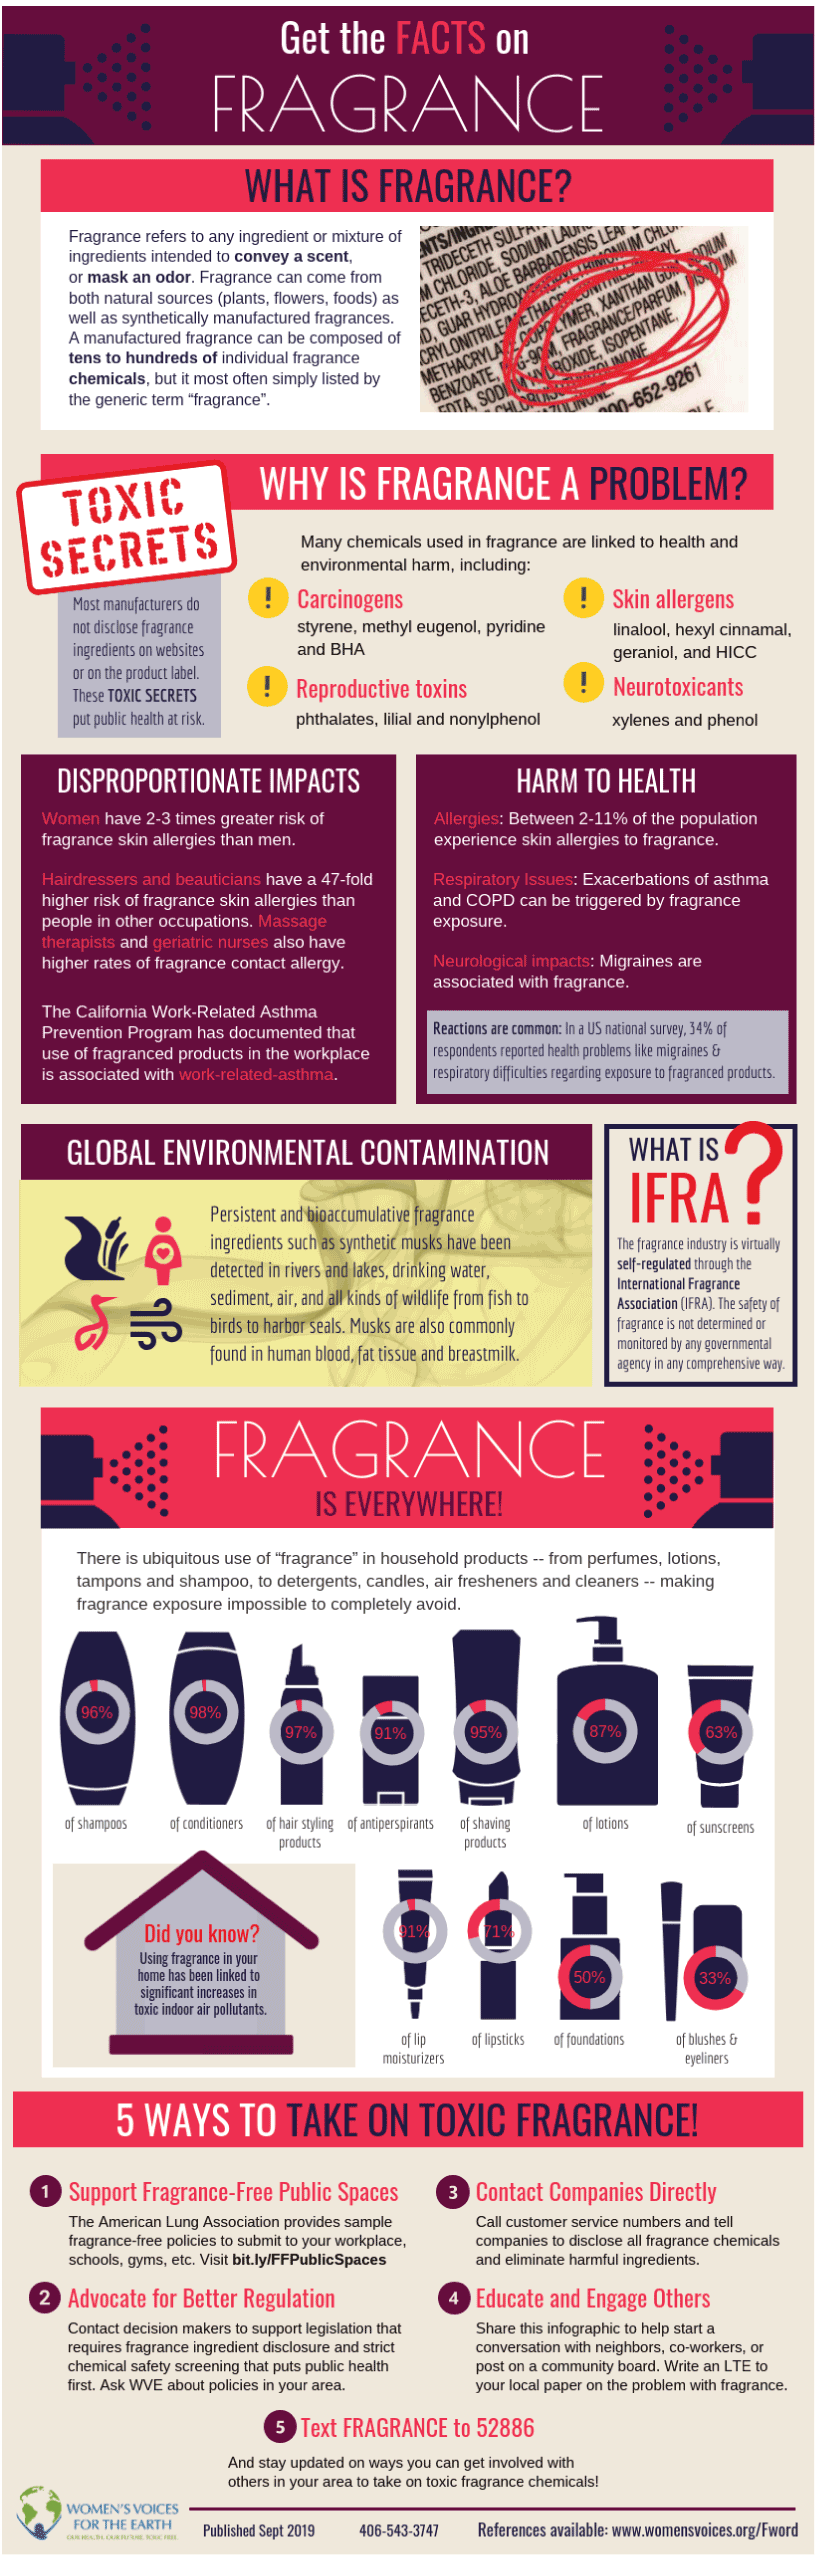 Get the Facts on Fragrance: Infographic - Women's Voices for